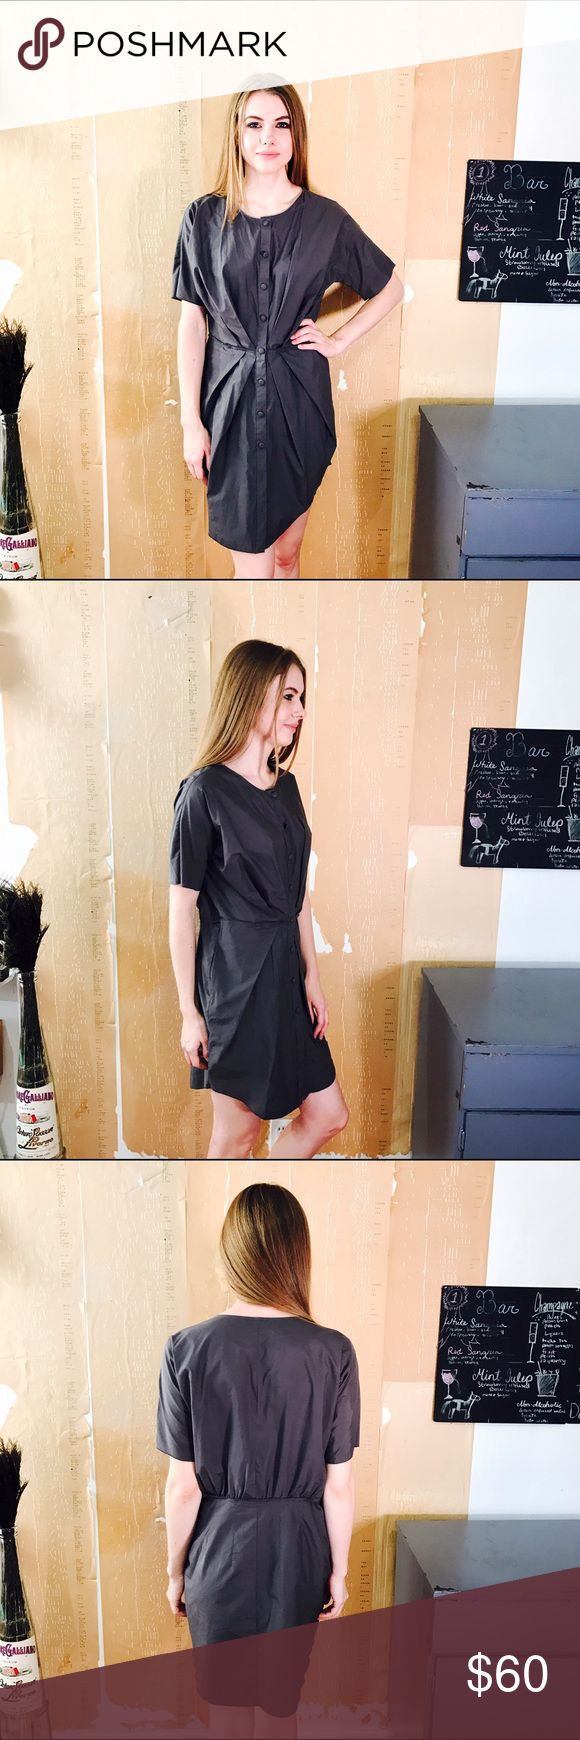 """UNIQLO X COSTELLO TAGLIAPIETRA DRESS #264 UNIQLO, Costello Tagliapietra, gray structured dress. Button up front. Short sleeve, size L CONDITION: EUC, No issues.  🎁 SHIPS WITHIN 24HRS  CHEST: 40"""" WAIST: 30""""  LENGTH: 34"""" INSEAM: *All measurements taken while item is laid flat (doubled when necessary) and measured across the front  MATERIAL: Cotton, Polyester  STRETCH: None INSTAGRAM @ORNAMENTALSTONE 🚫Trading Uniqlo Dresses Mini"""